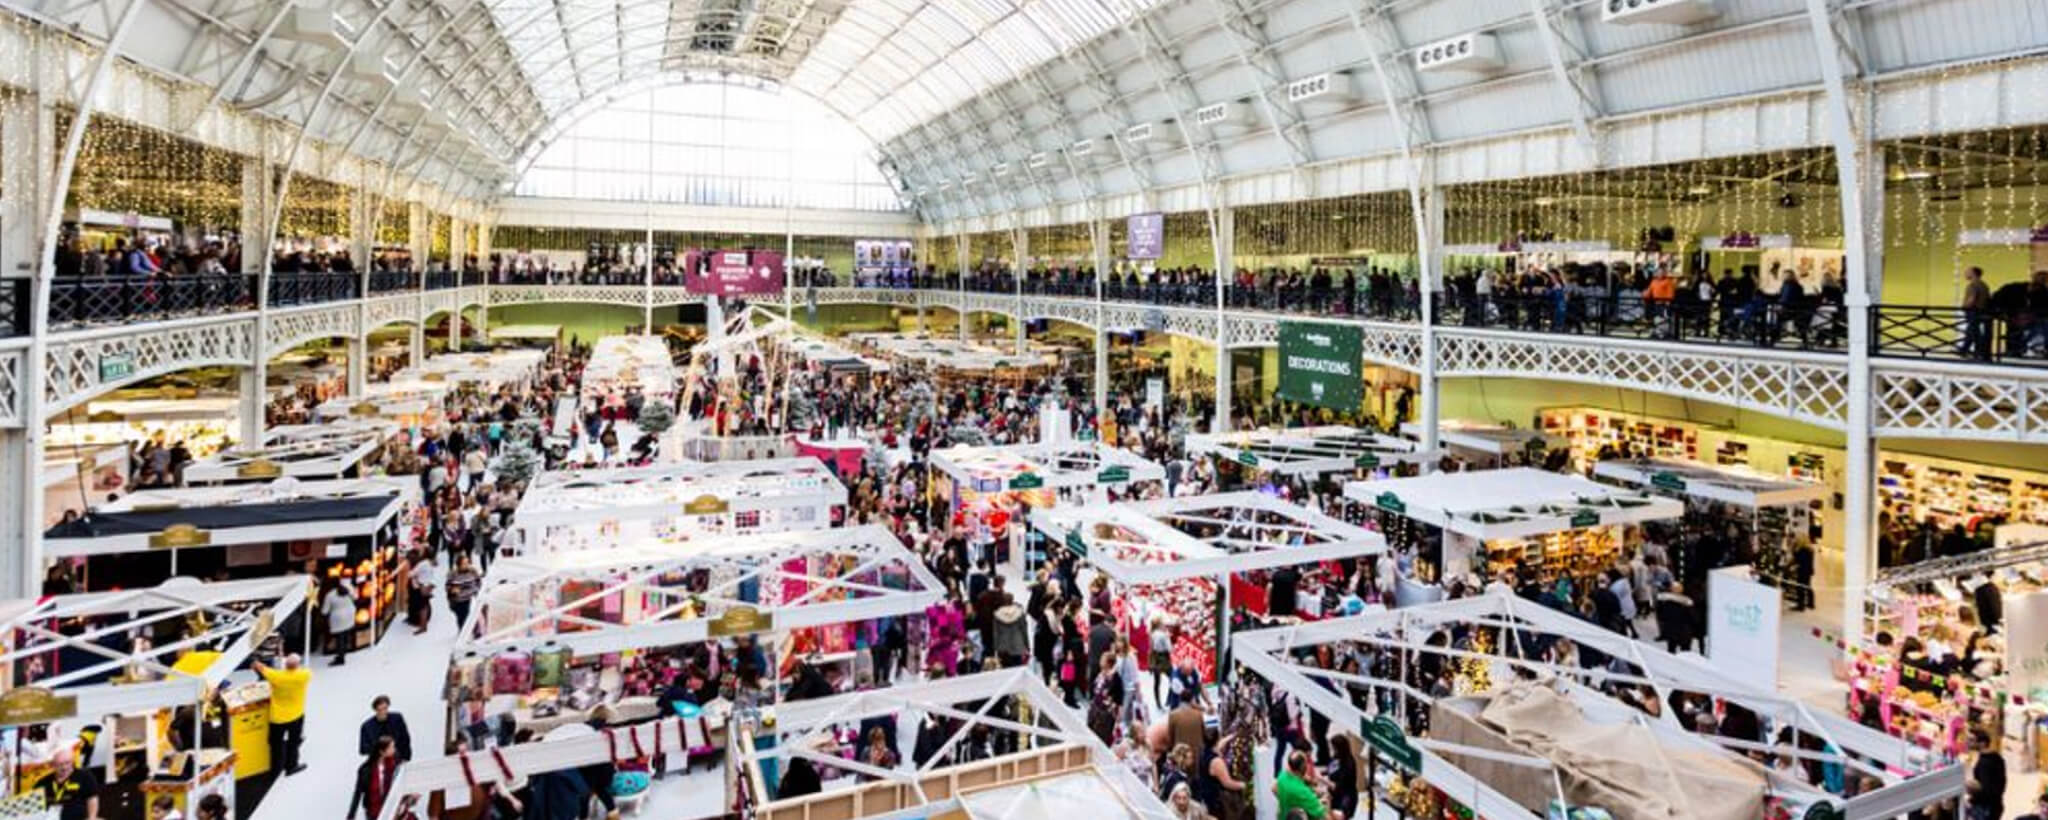 Design News Ideal Home Show At Christmas